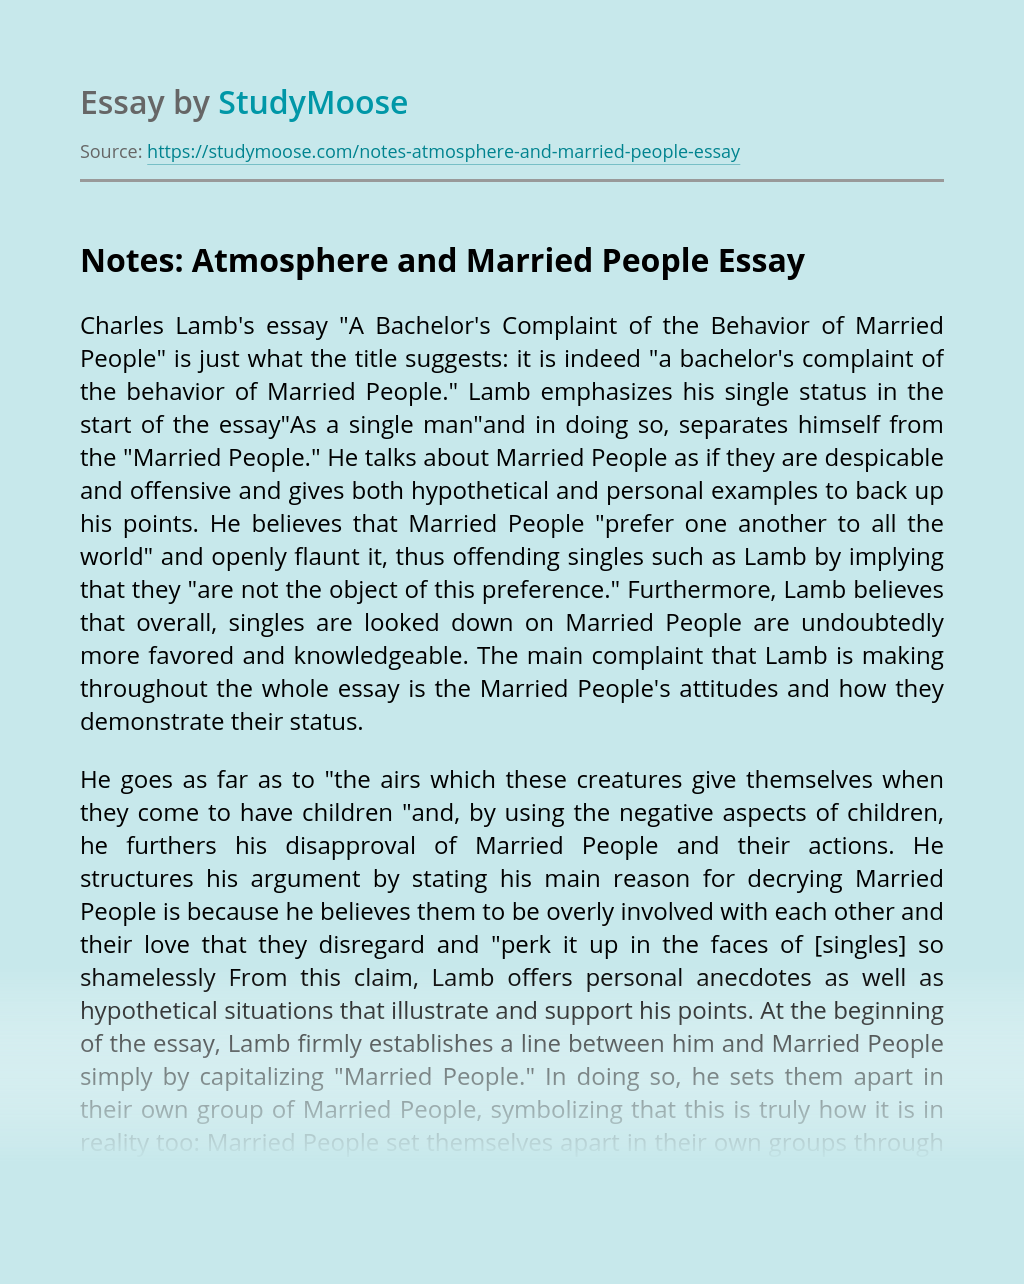 Notes: Atmosphere and Married People